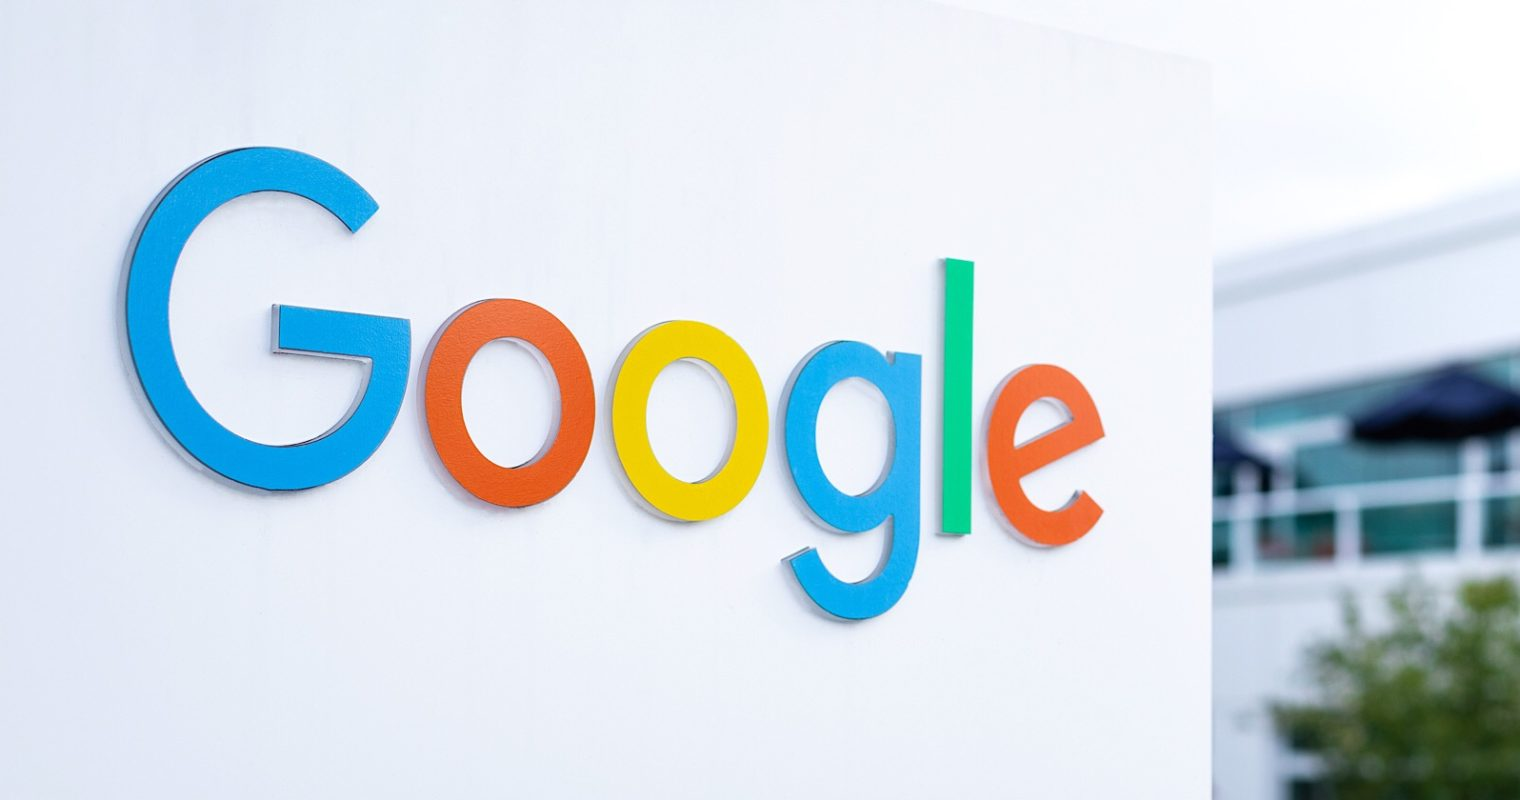 Google Makes Big Change to Nofollow, Introduces 2 New Link Attributes